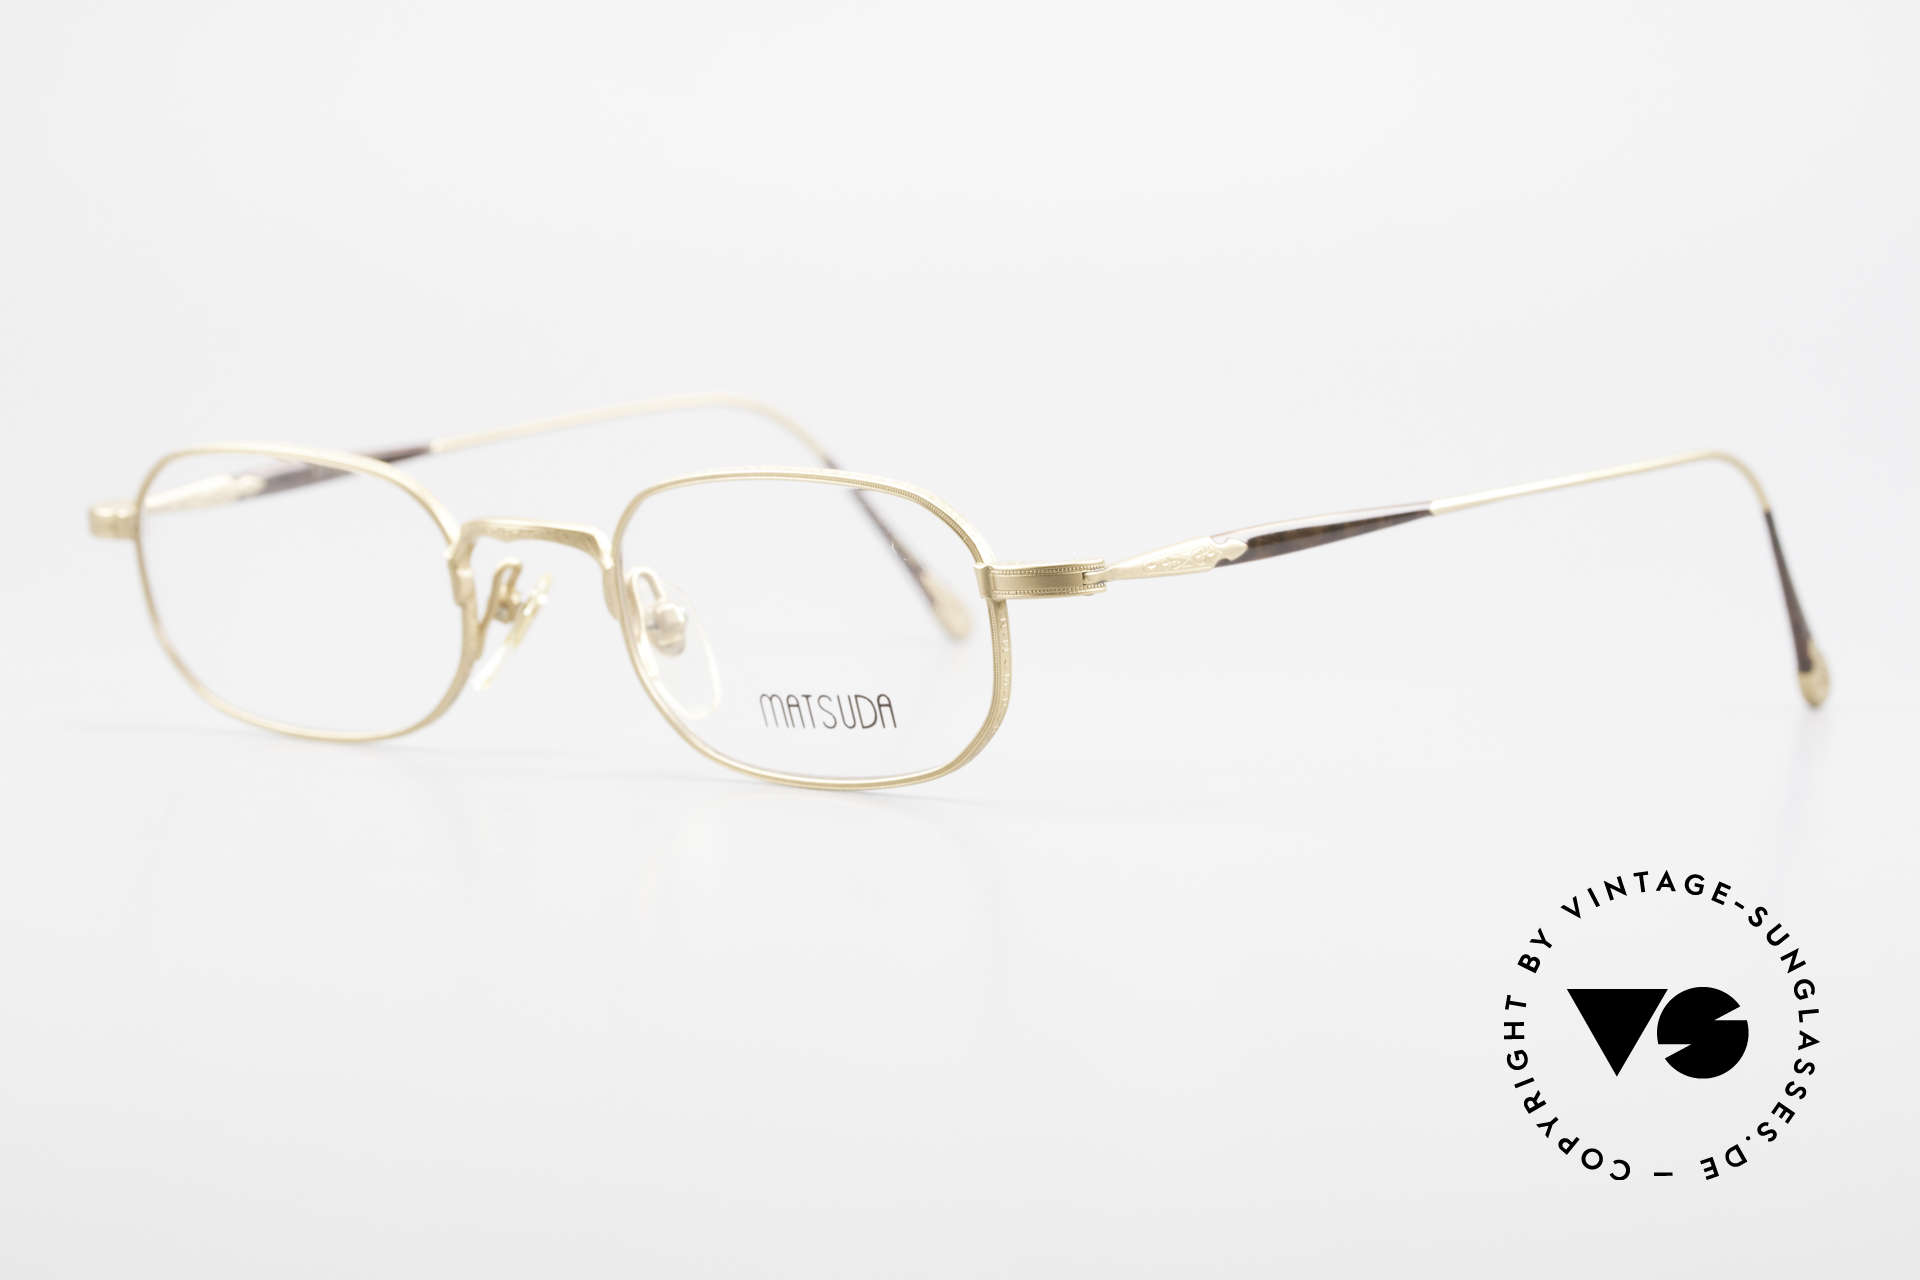 Matsuda 10108 Men's Eyeglasses 90's High End, the full metal frame is decorated with tiny engravings, Made for Men